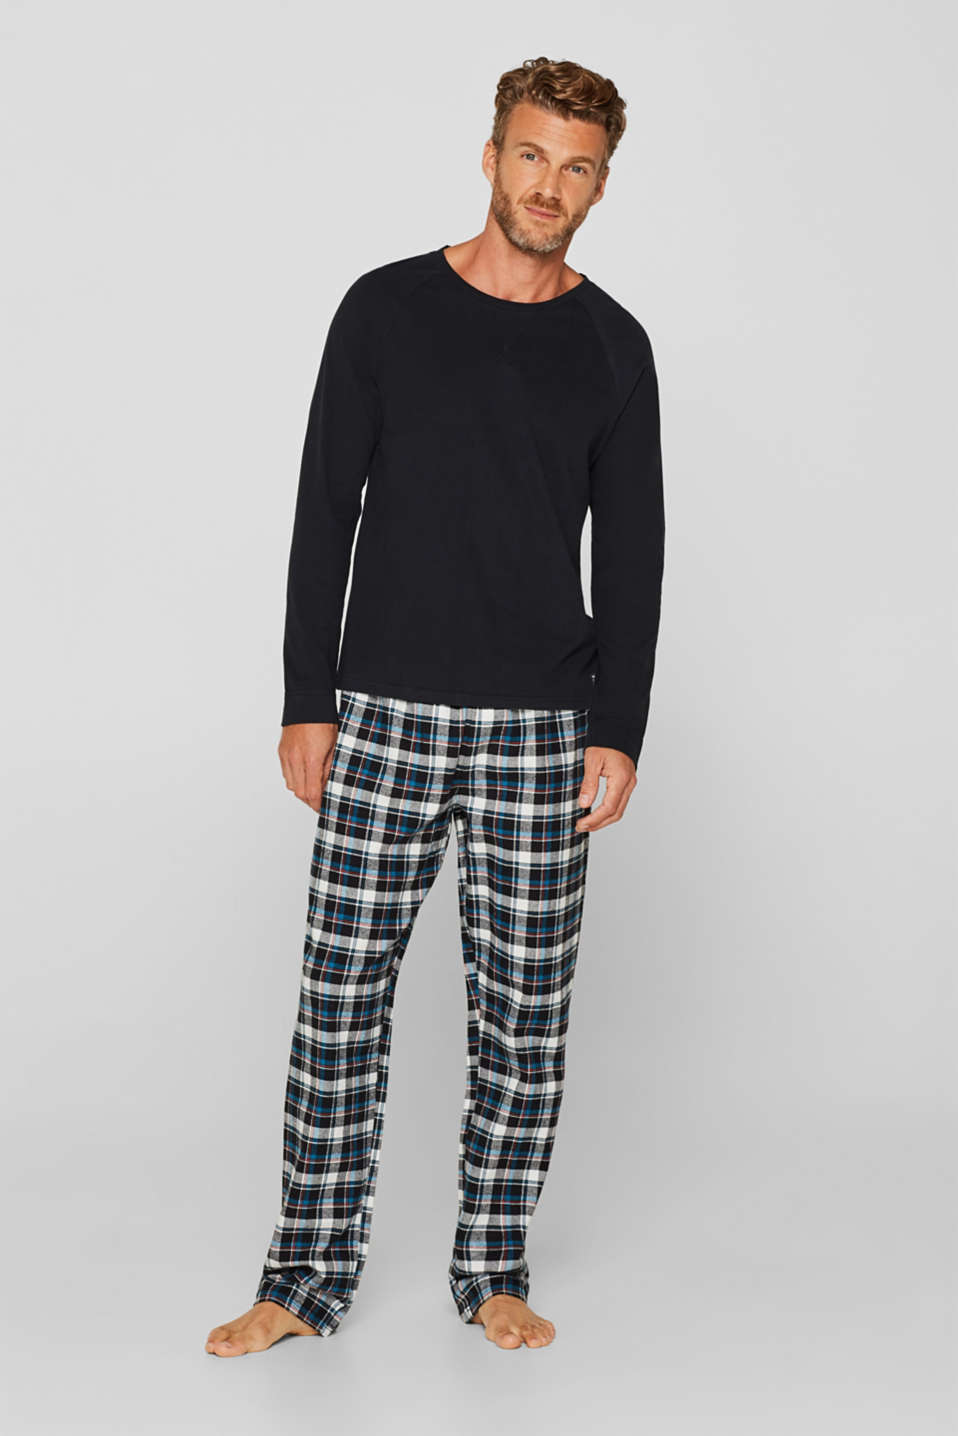 Jersey/flannel pyjamas, 100% cotton, BLACK, detail image number 0